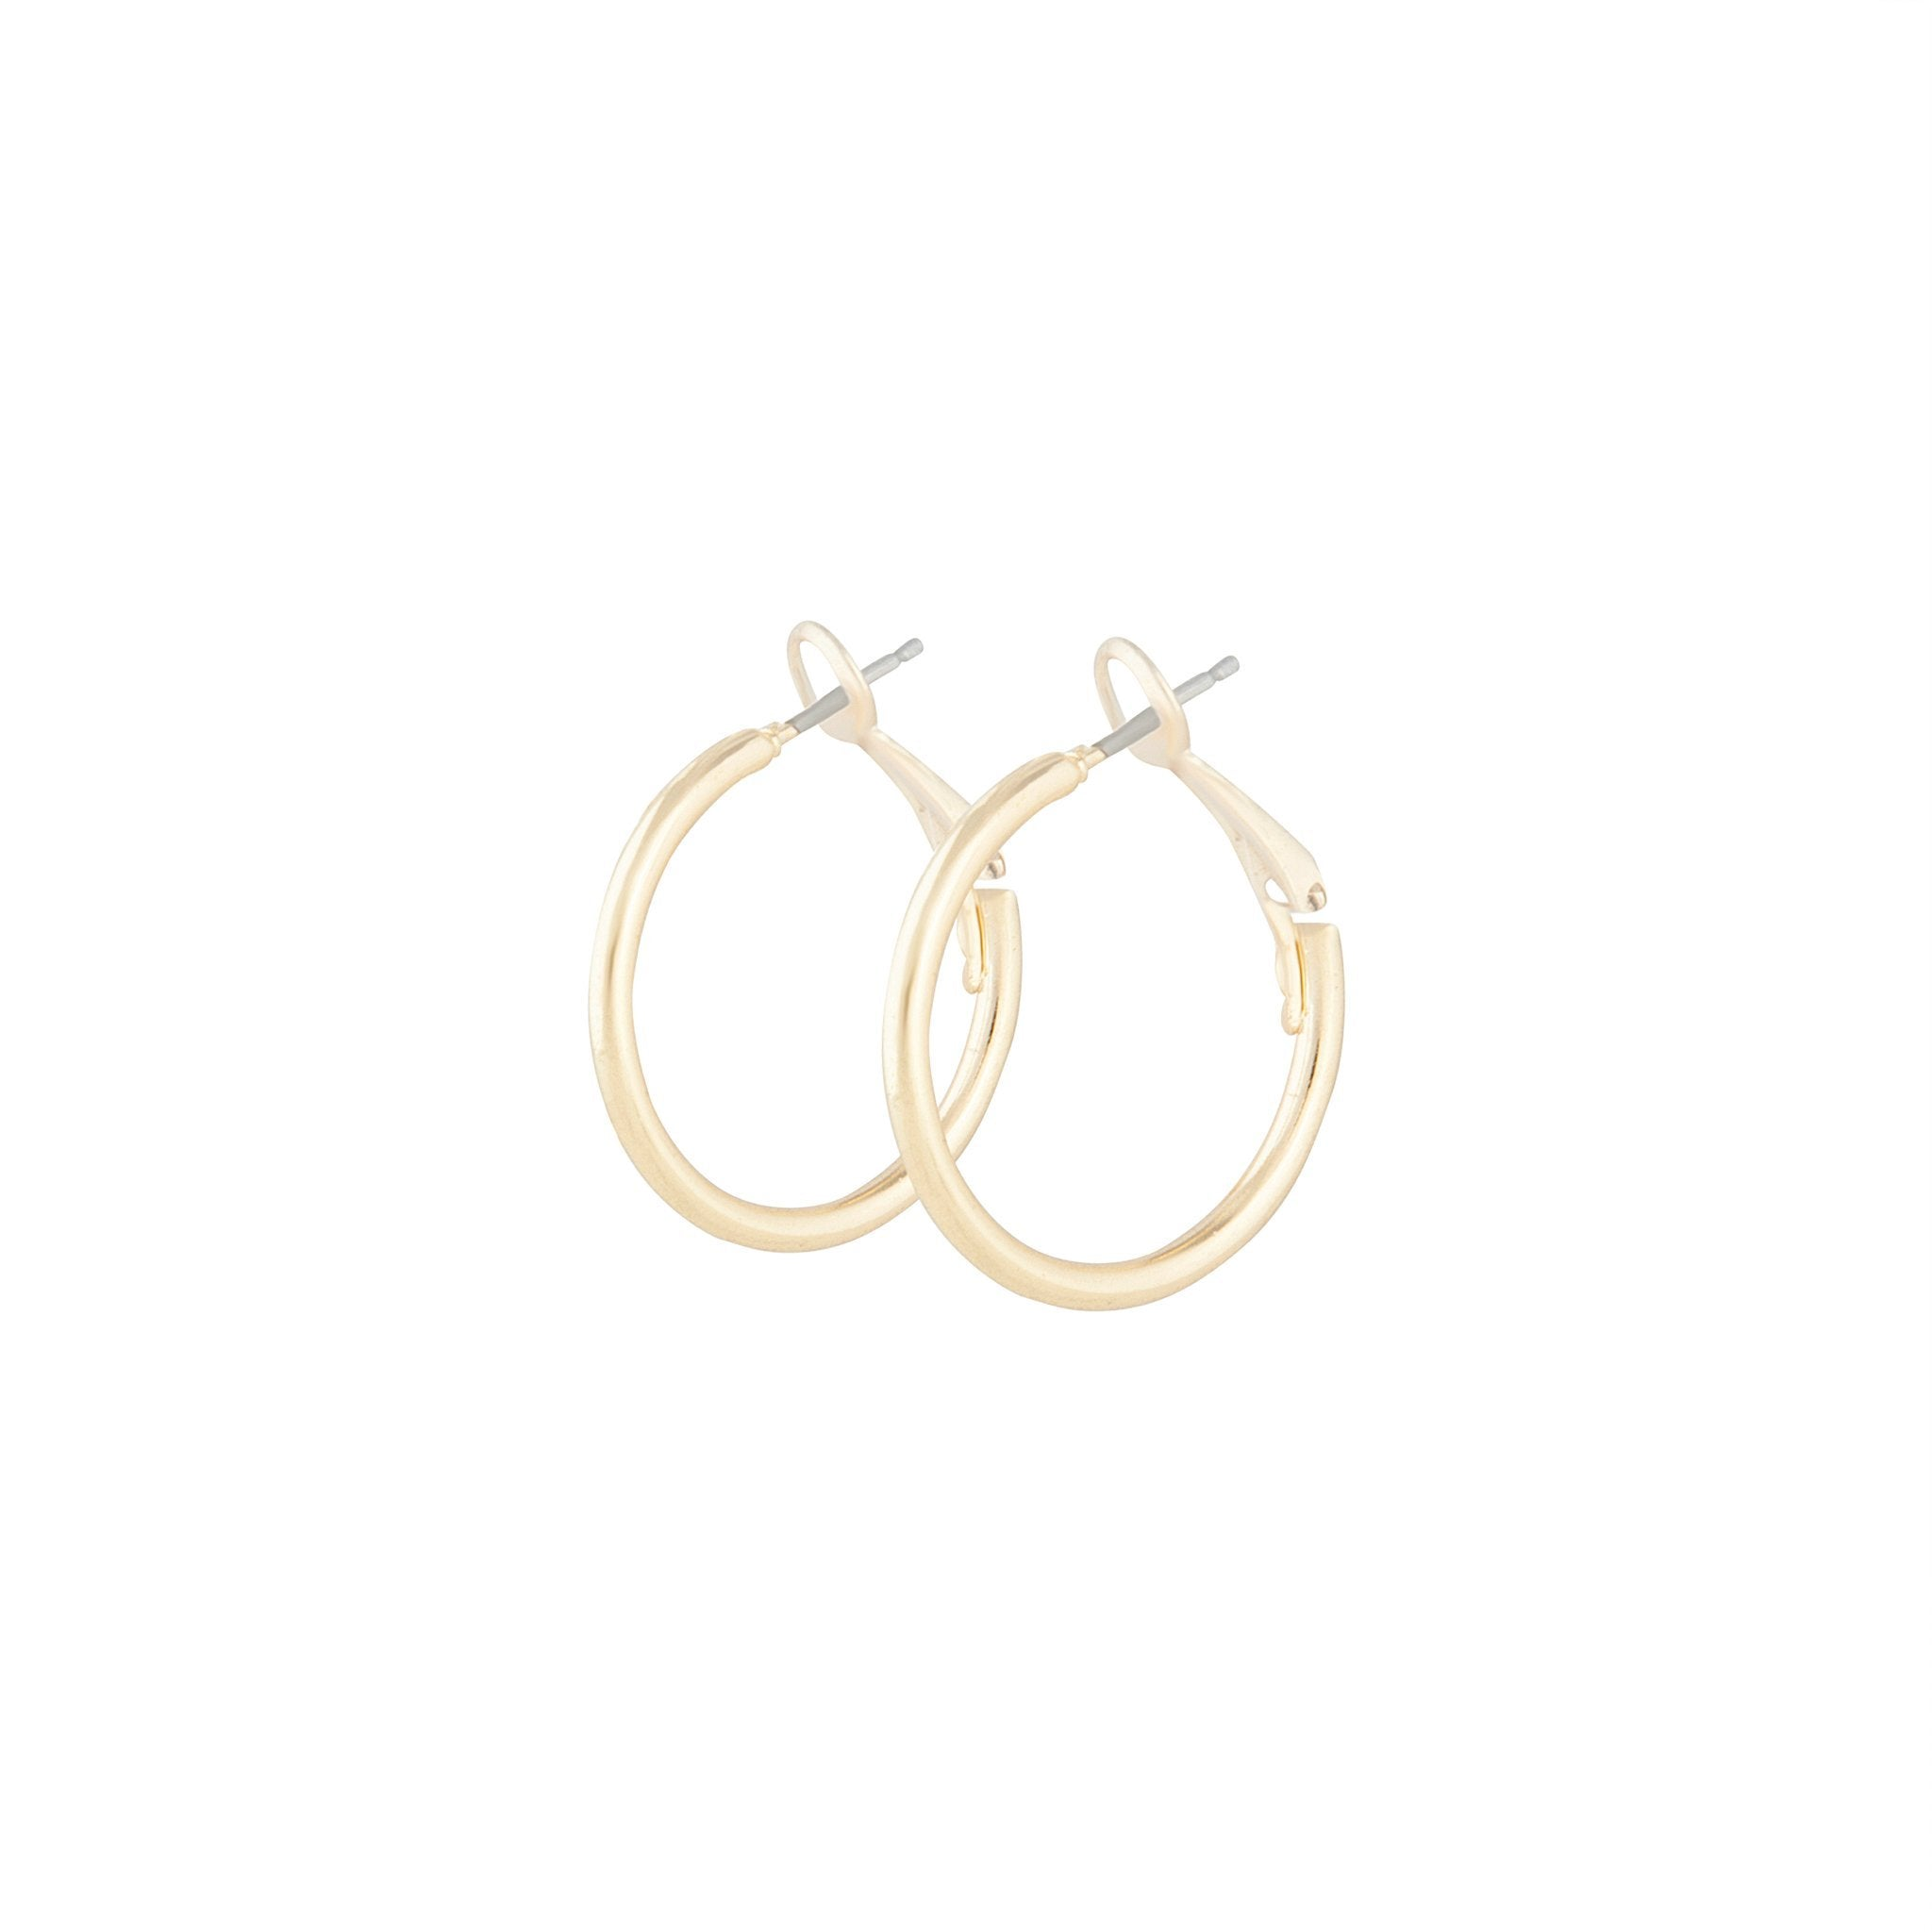 Polished Gold Dainty Hoop Earring